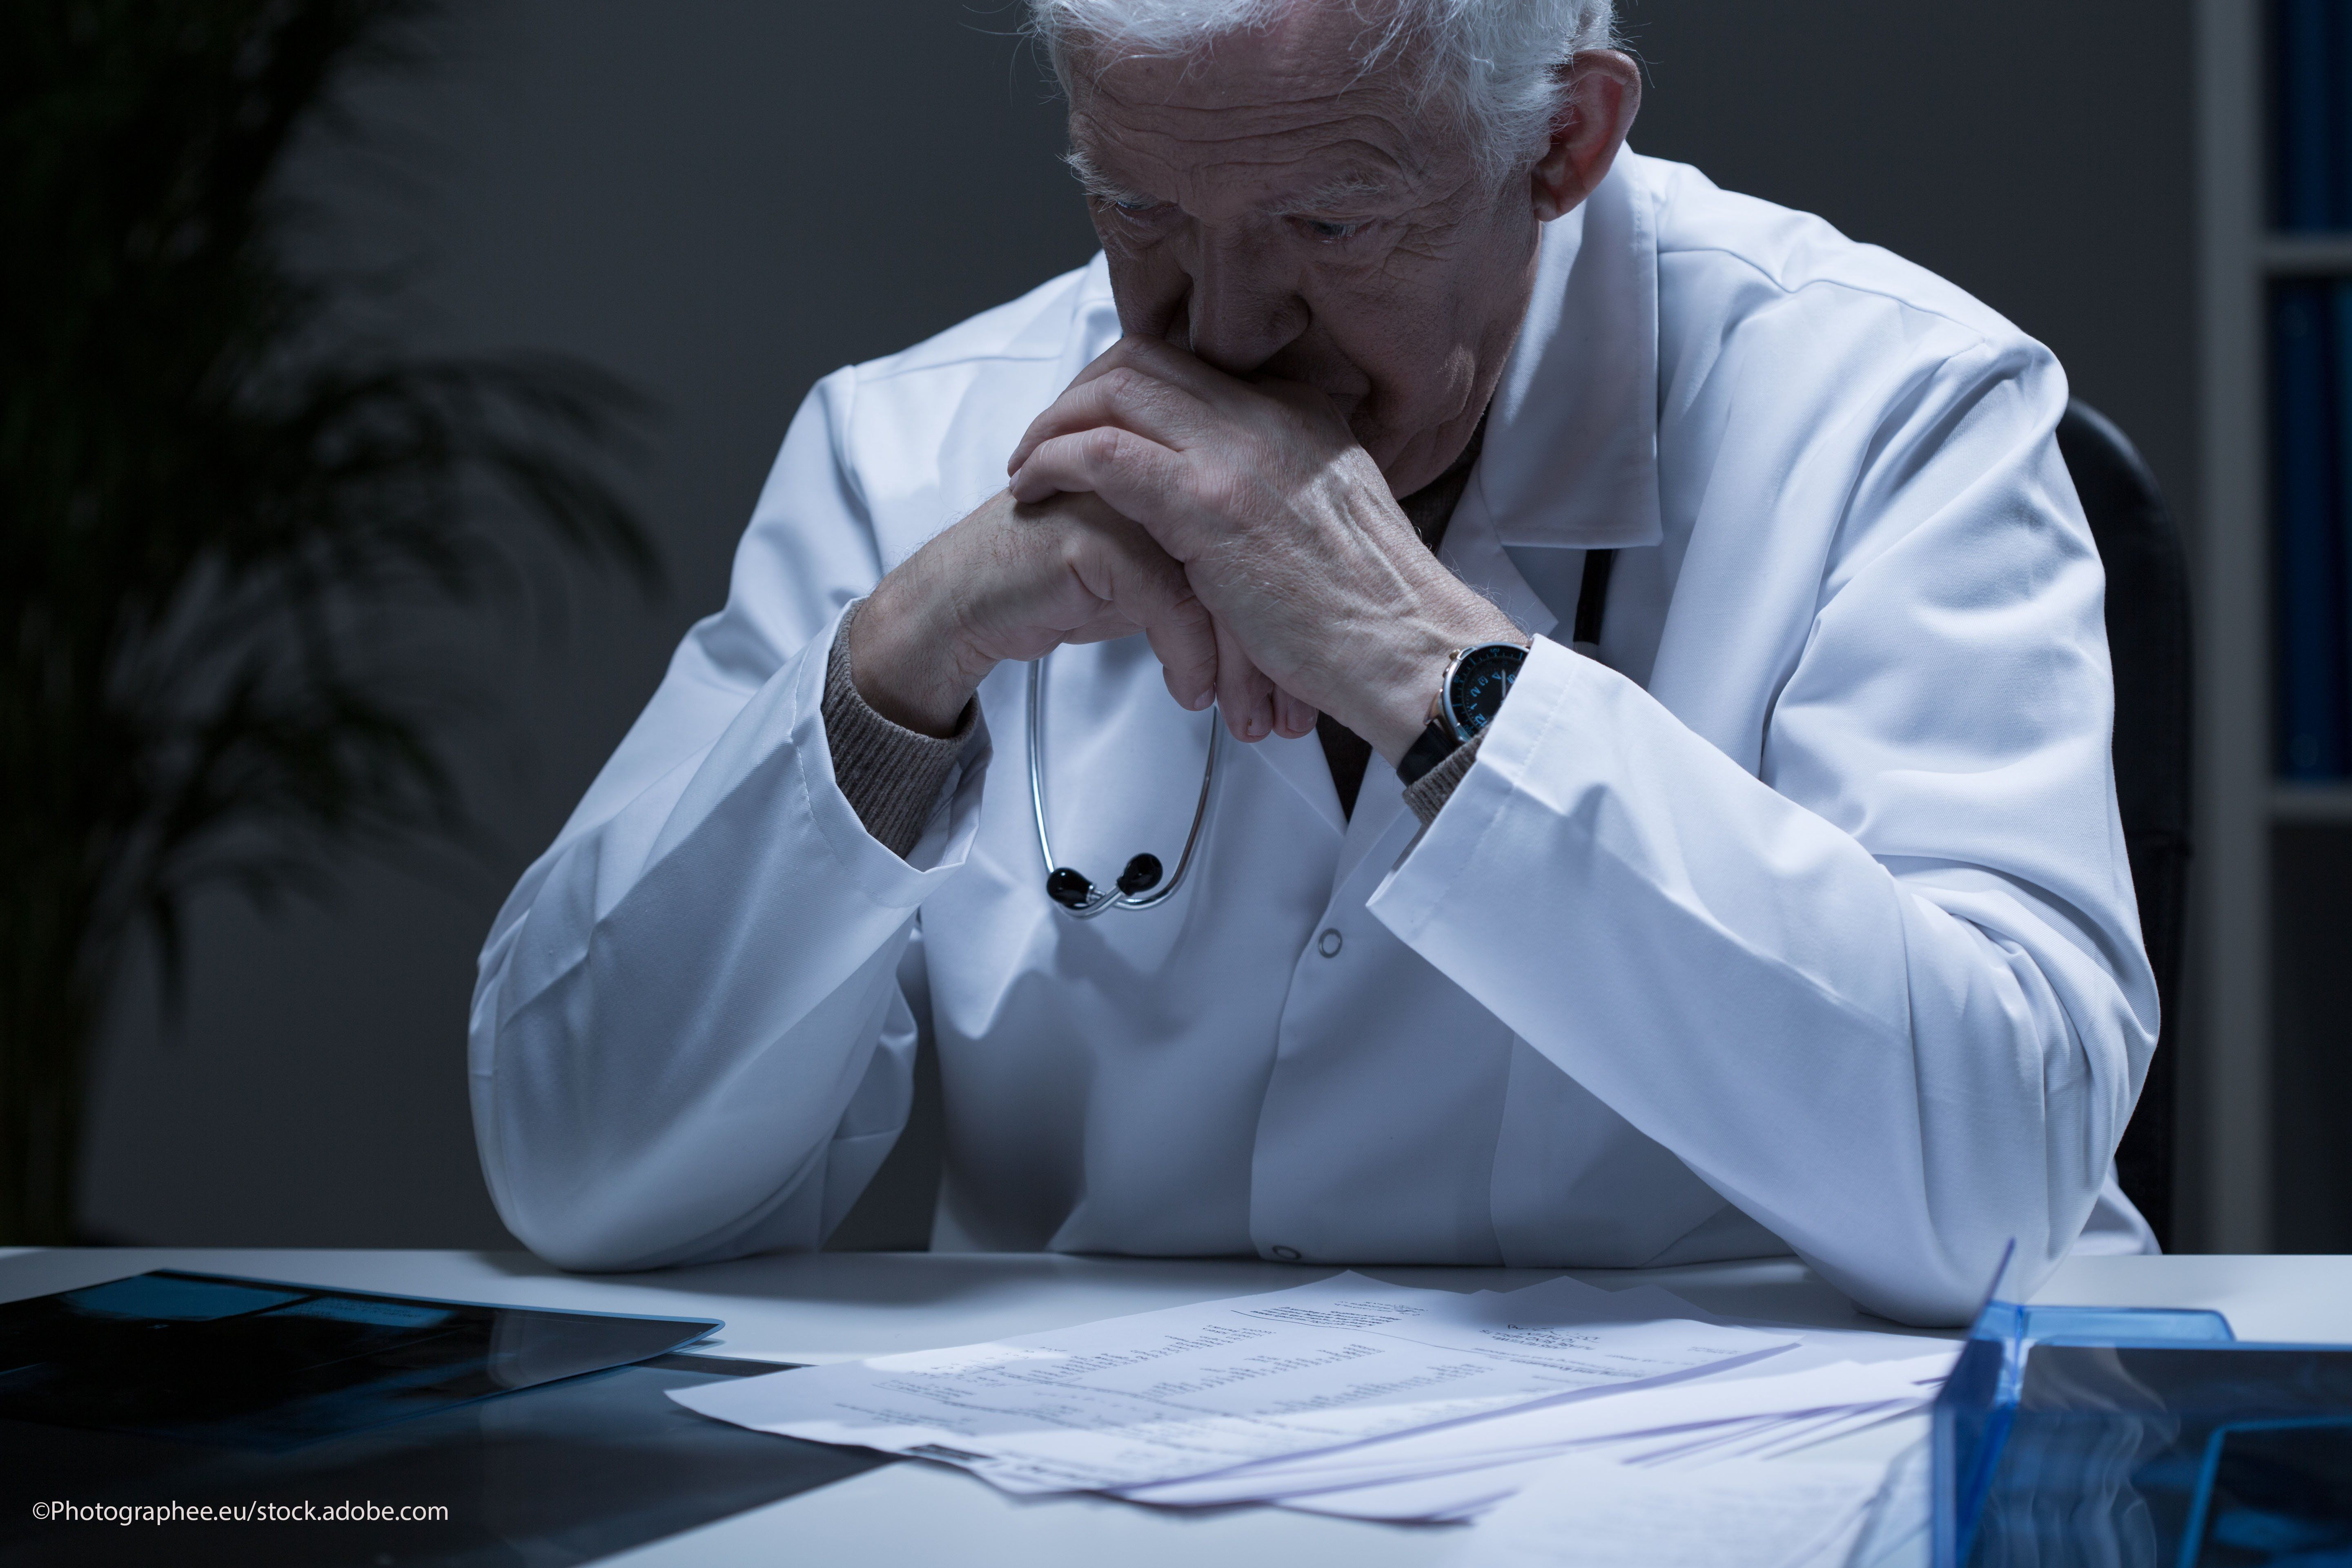 What's ruining medicine for physicians: Paperwork and administrative burdens